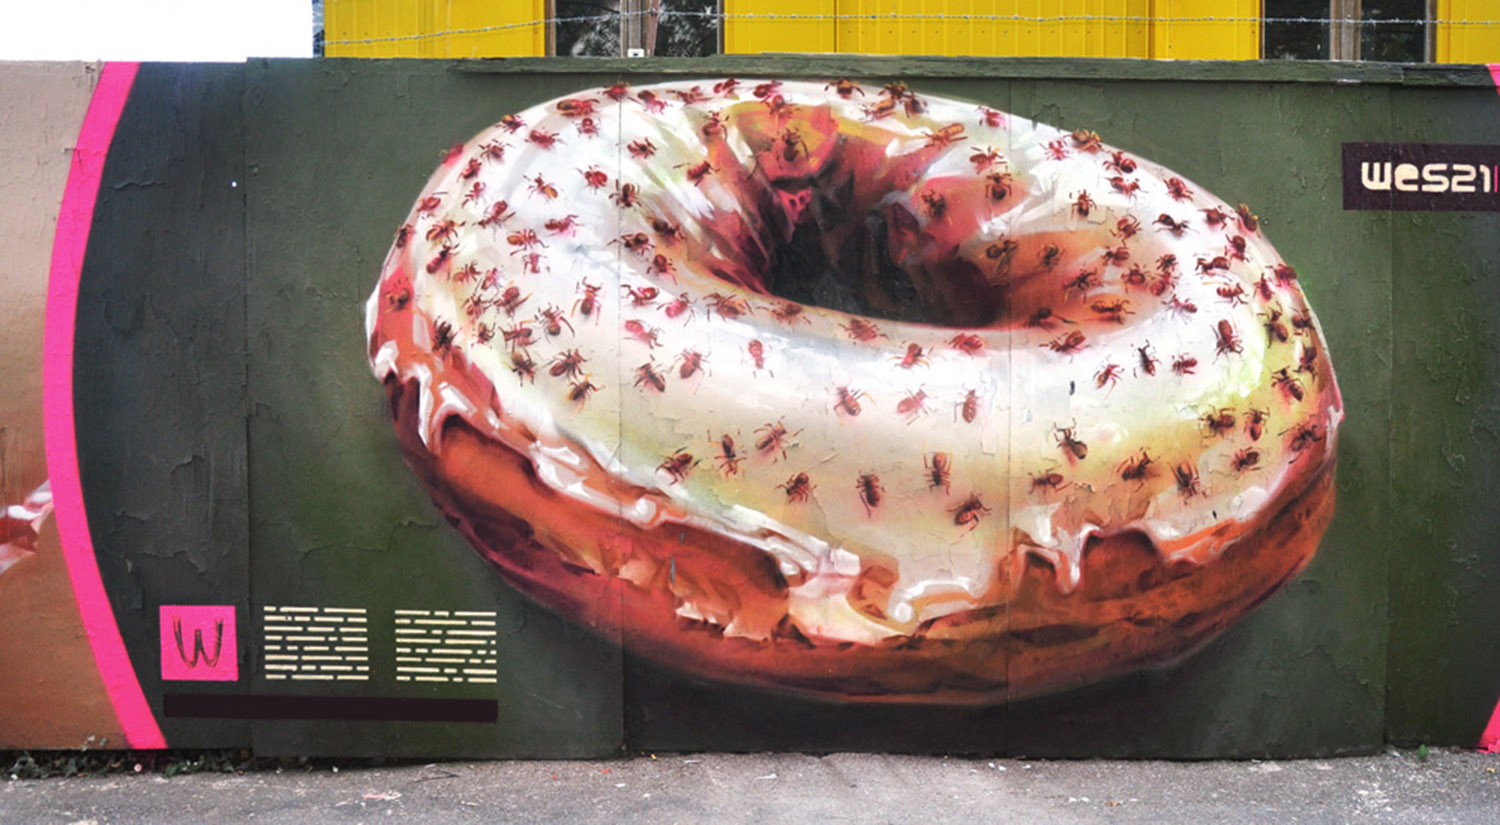 donut by remo wes21 lienhard